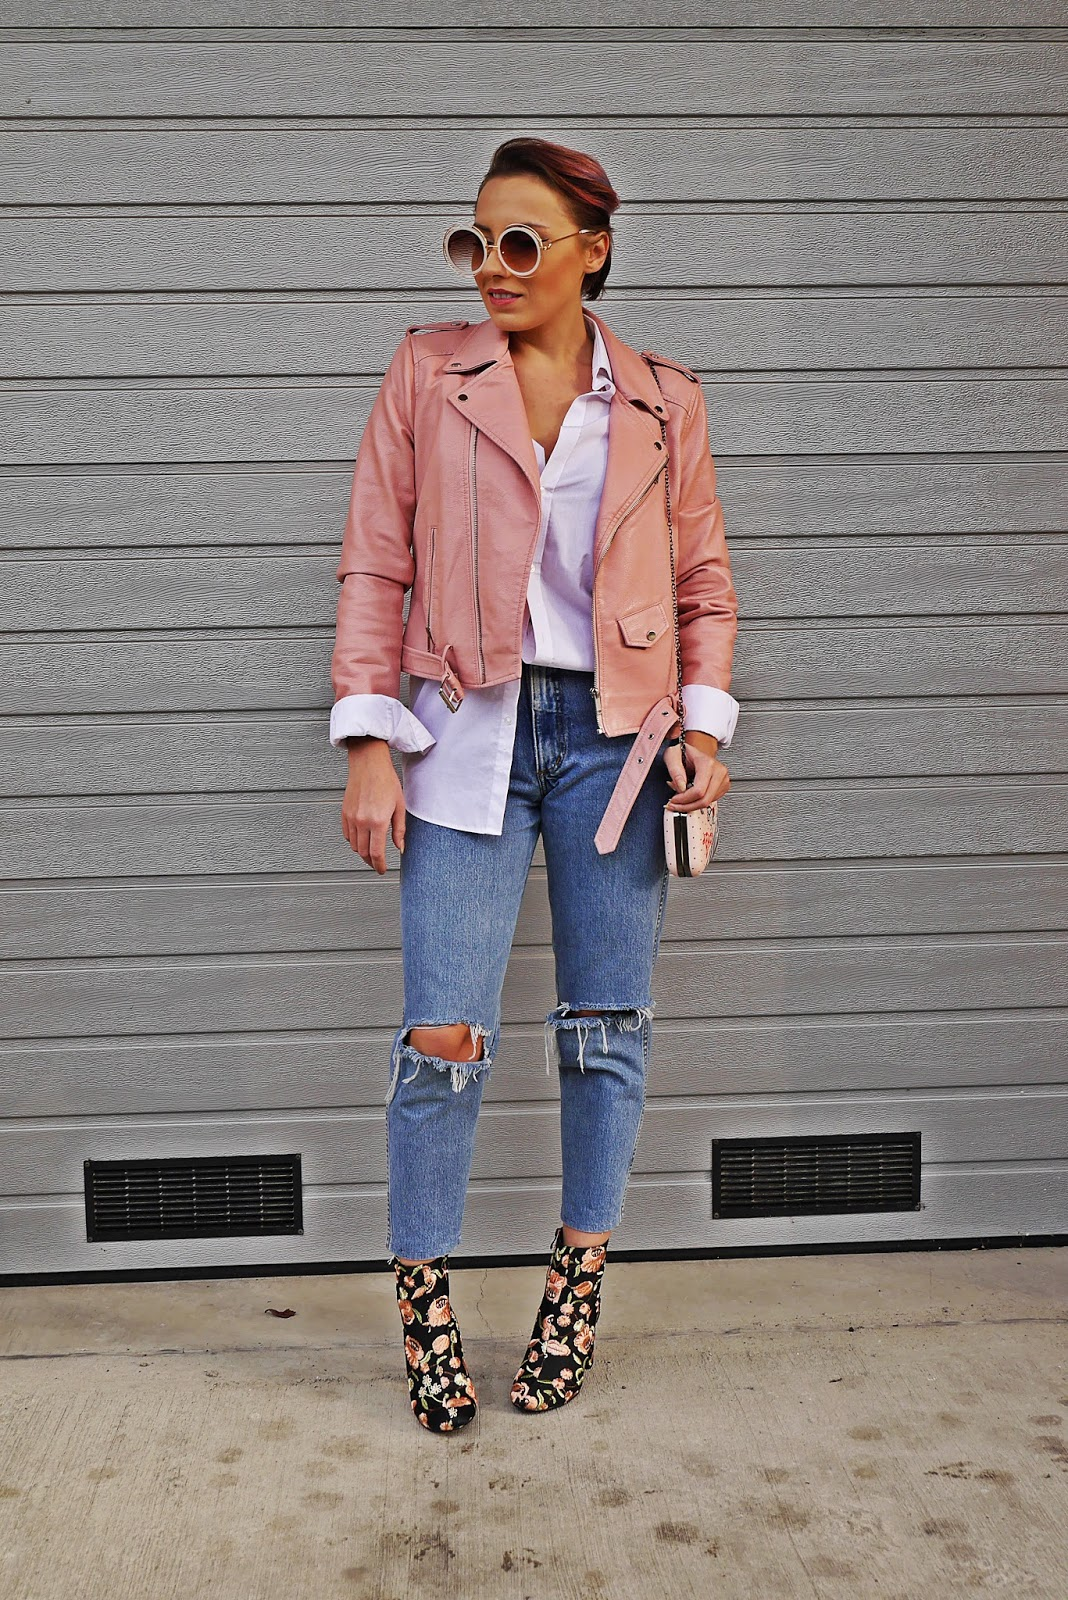 3_pink_leather_jacket_embroidery_boots_outfit_karyn_blog_modowy_271017s